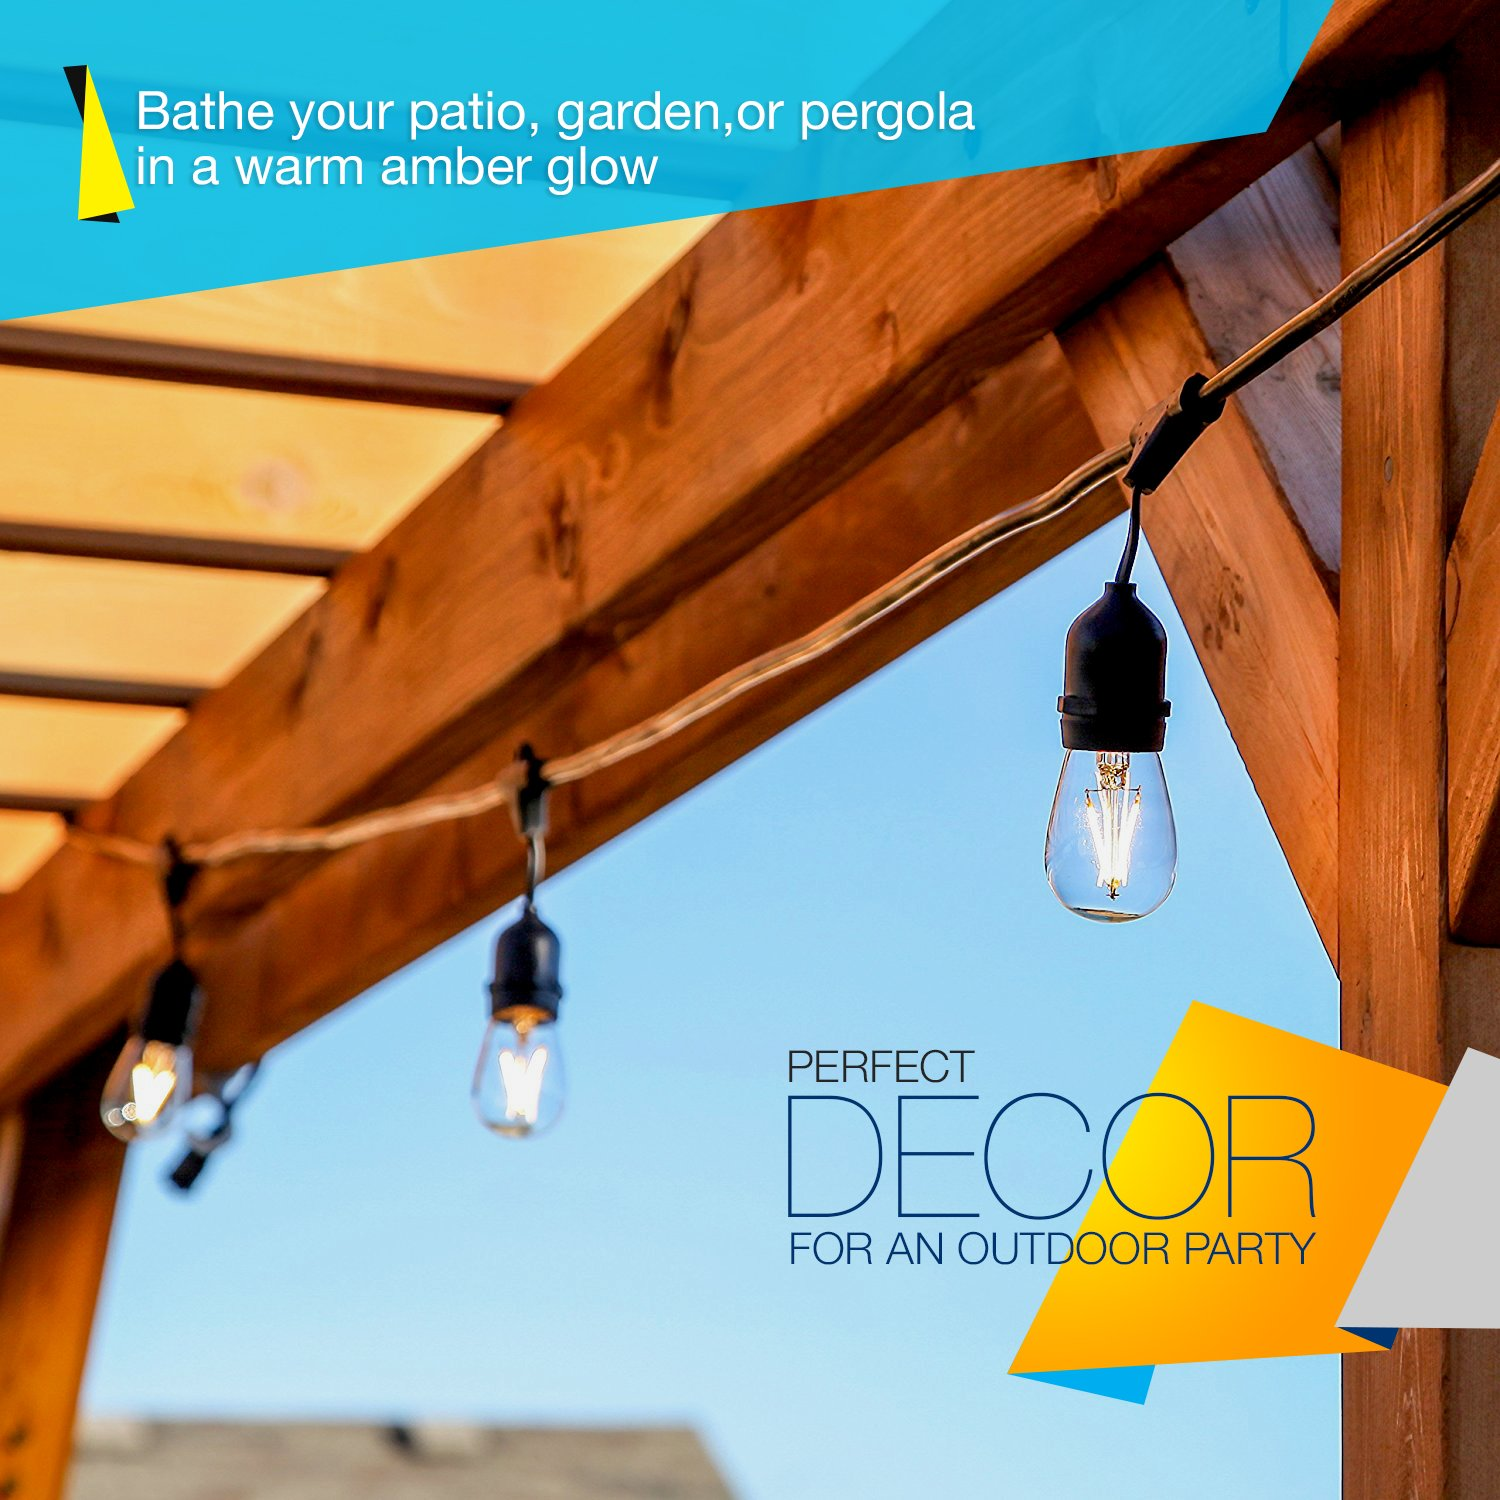 Also started to install some led lighting in the pergola - Amazon Com Brightech Ambience Pro Led Commercial Grade Outdoor String Lights With Hanging Sockets Dimmable 2 Watt Bulbs 48 Ft Market Cafe Edison